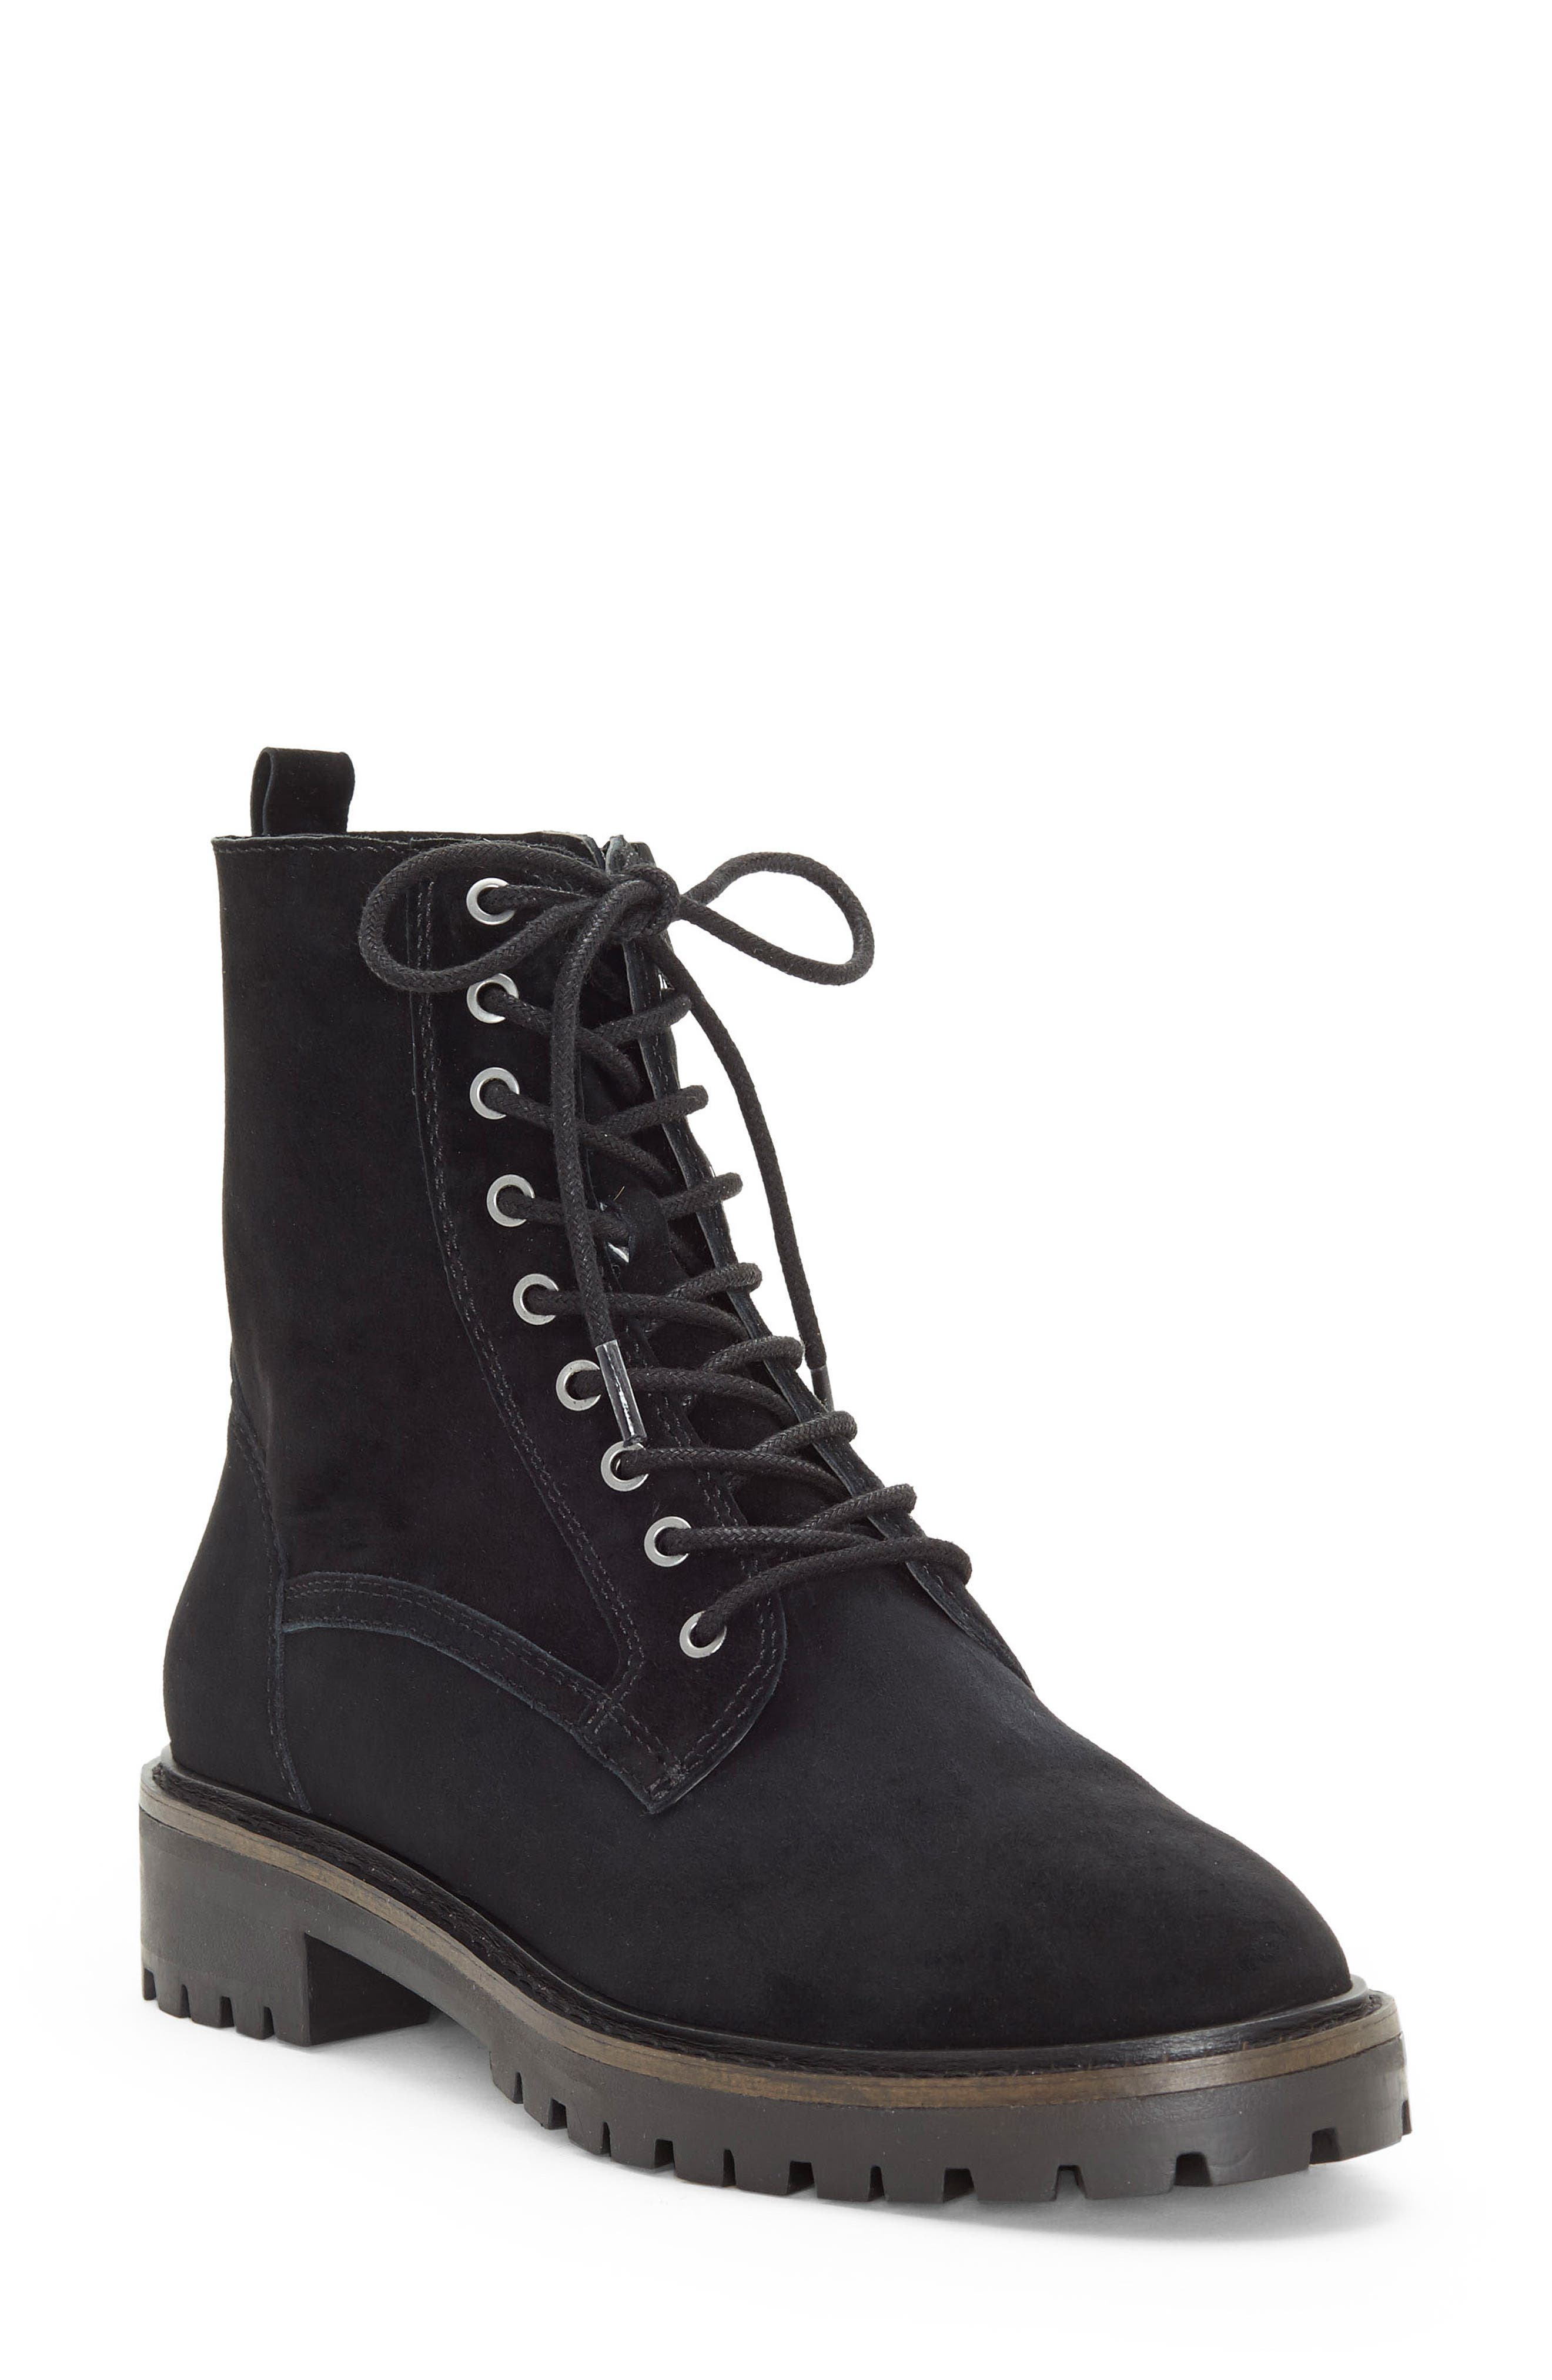 LUCKY BRAND, Idara Lace-Up Bootie, Main thumbnail 1, color, 001